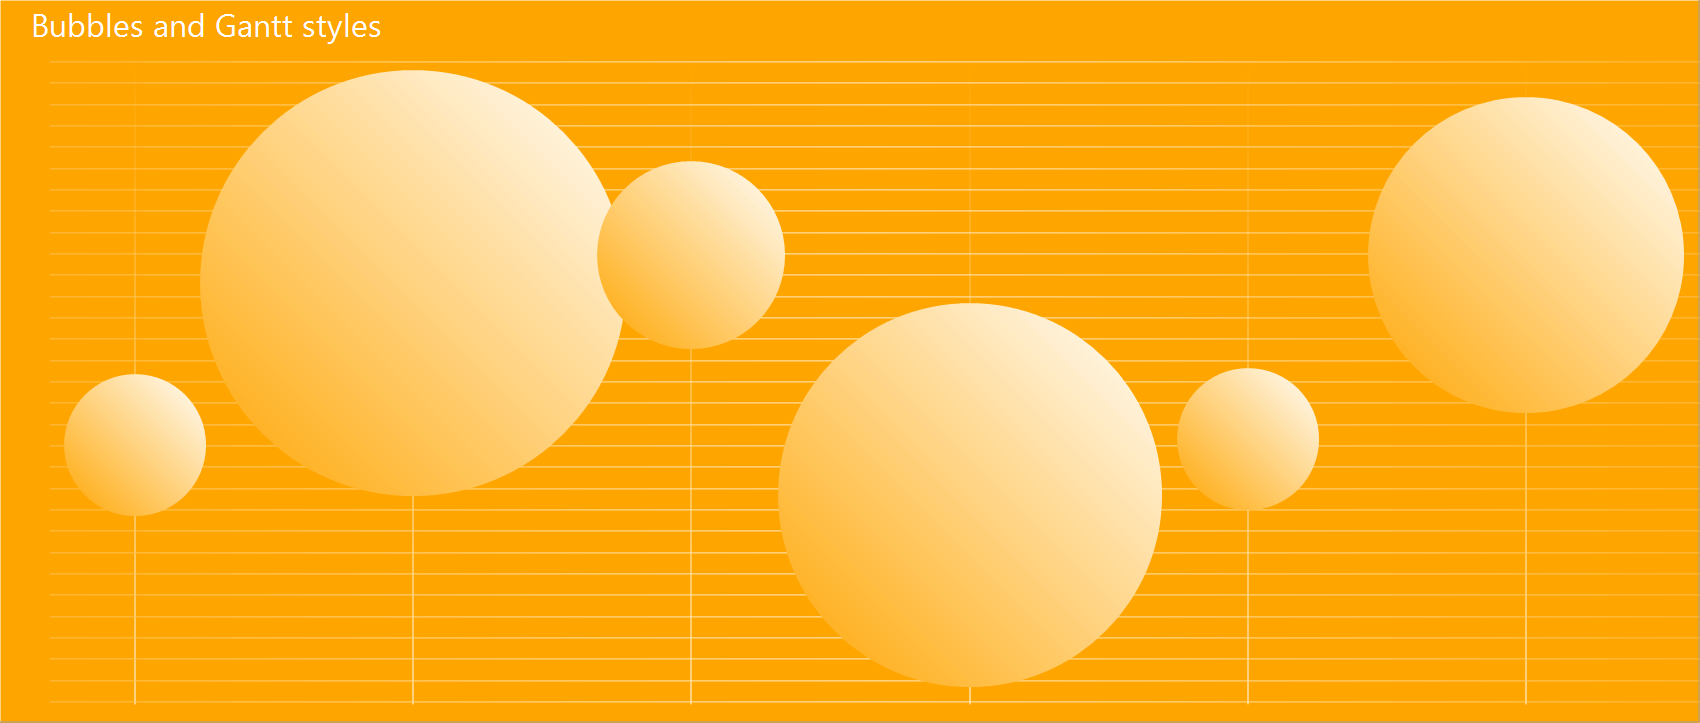 Displaying a Bubble Chart with variable size circular symbols to represent data.